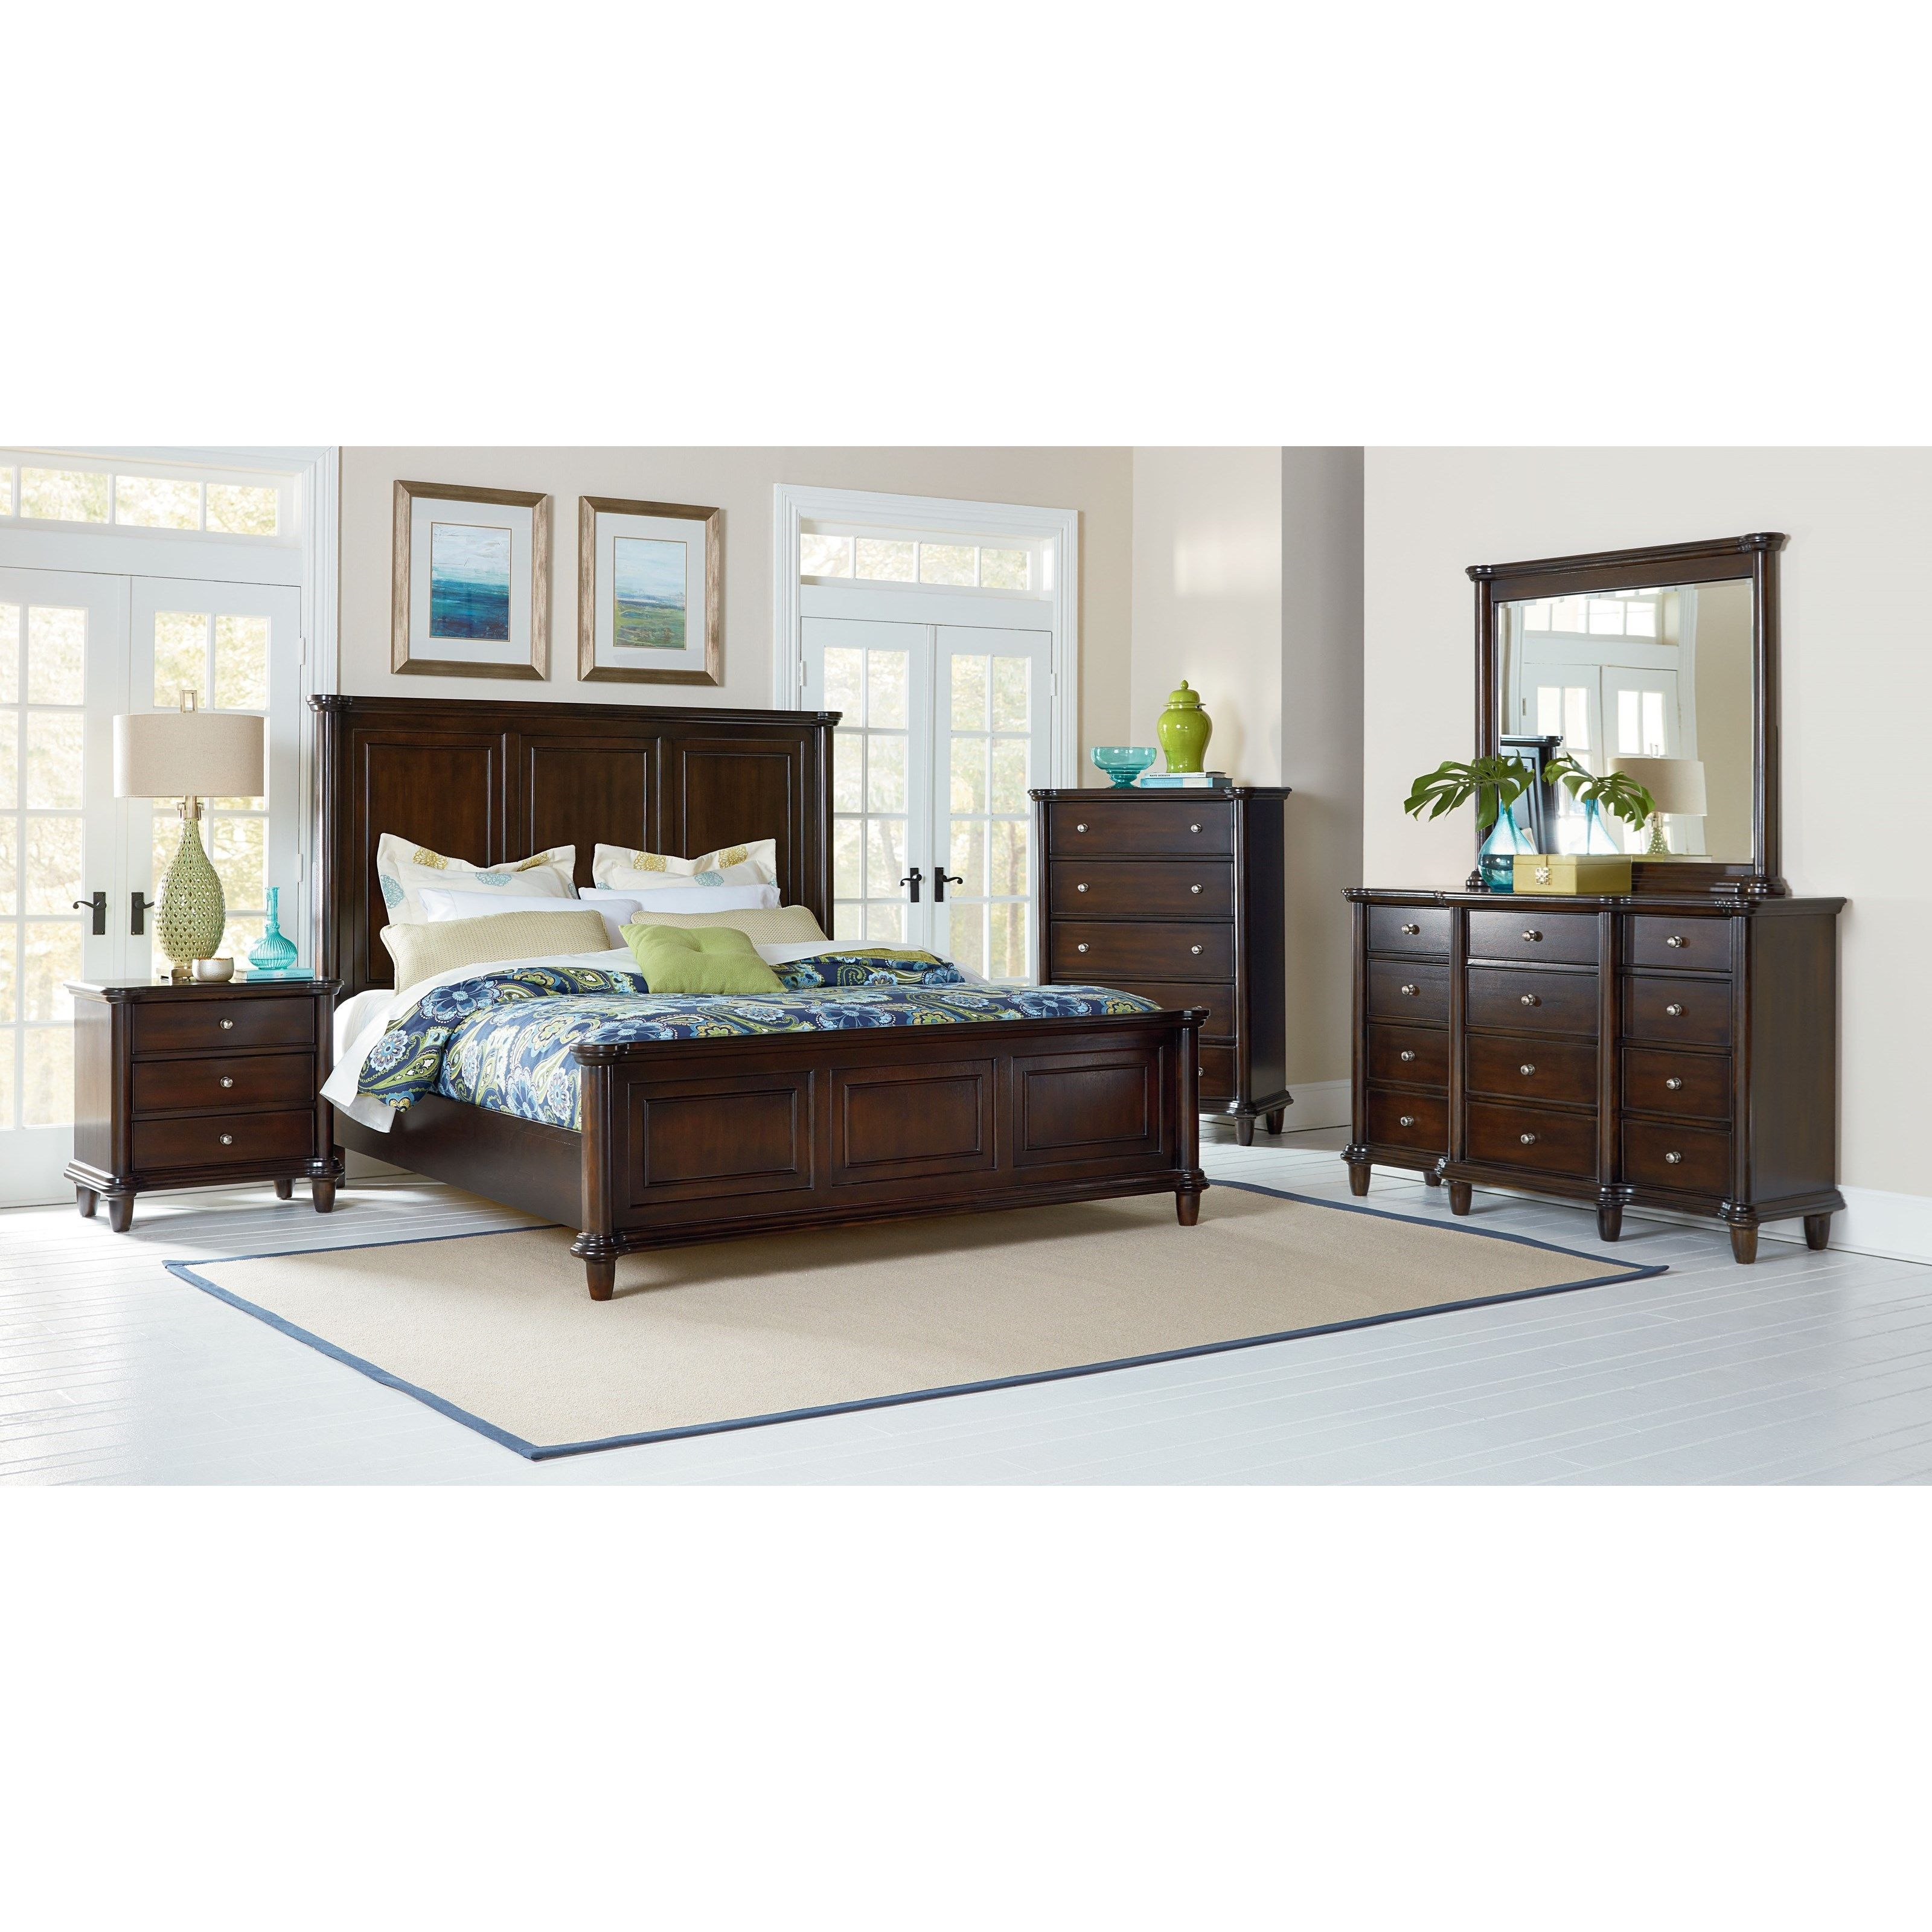 Good The Kingsley Queen Bedroom Group By Standard Furniture From Royal Furniture.  We Proudly Serve The